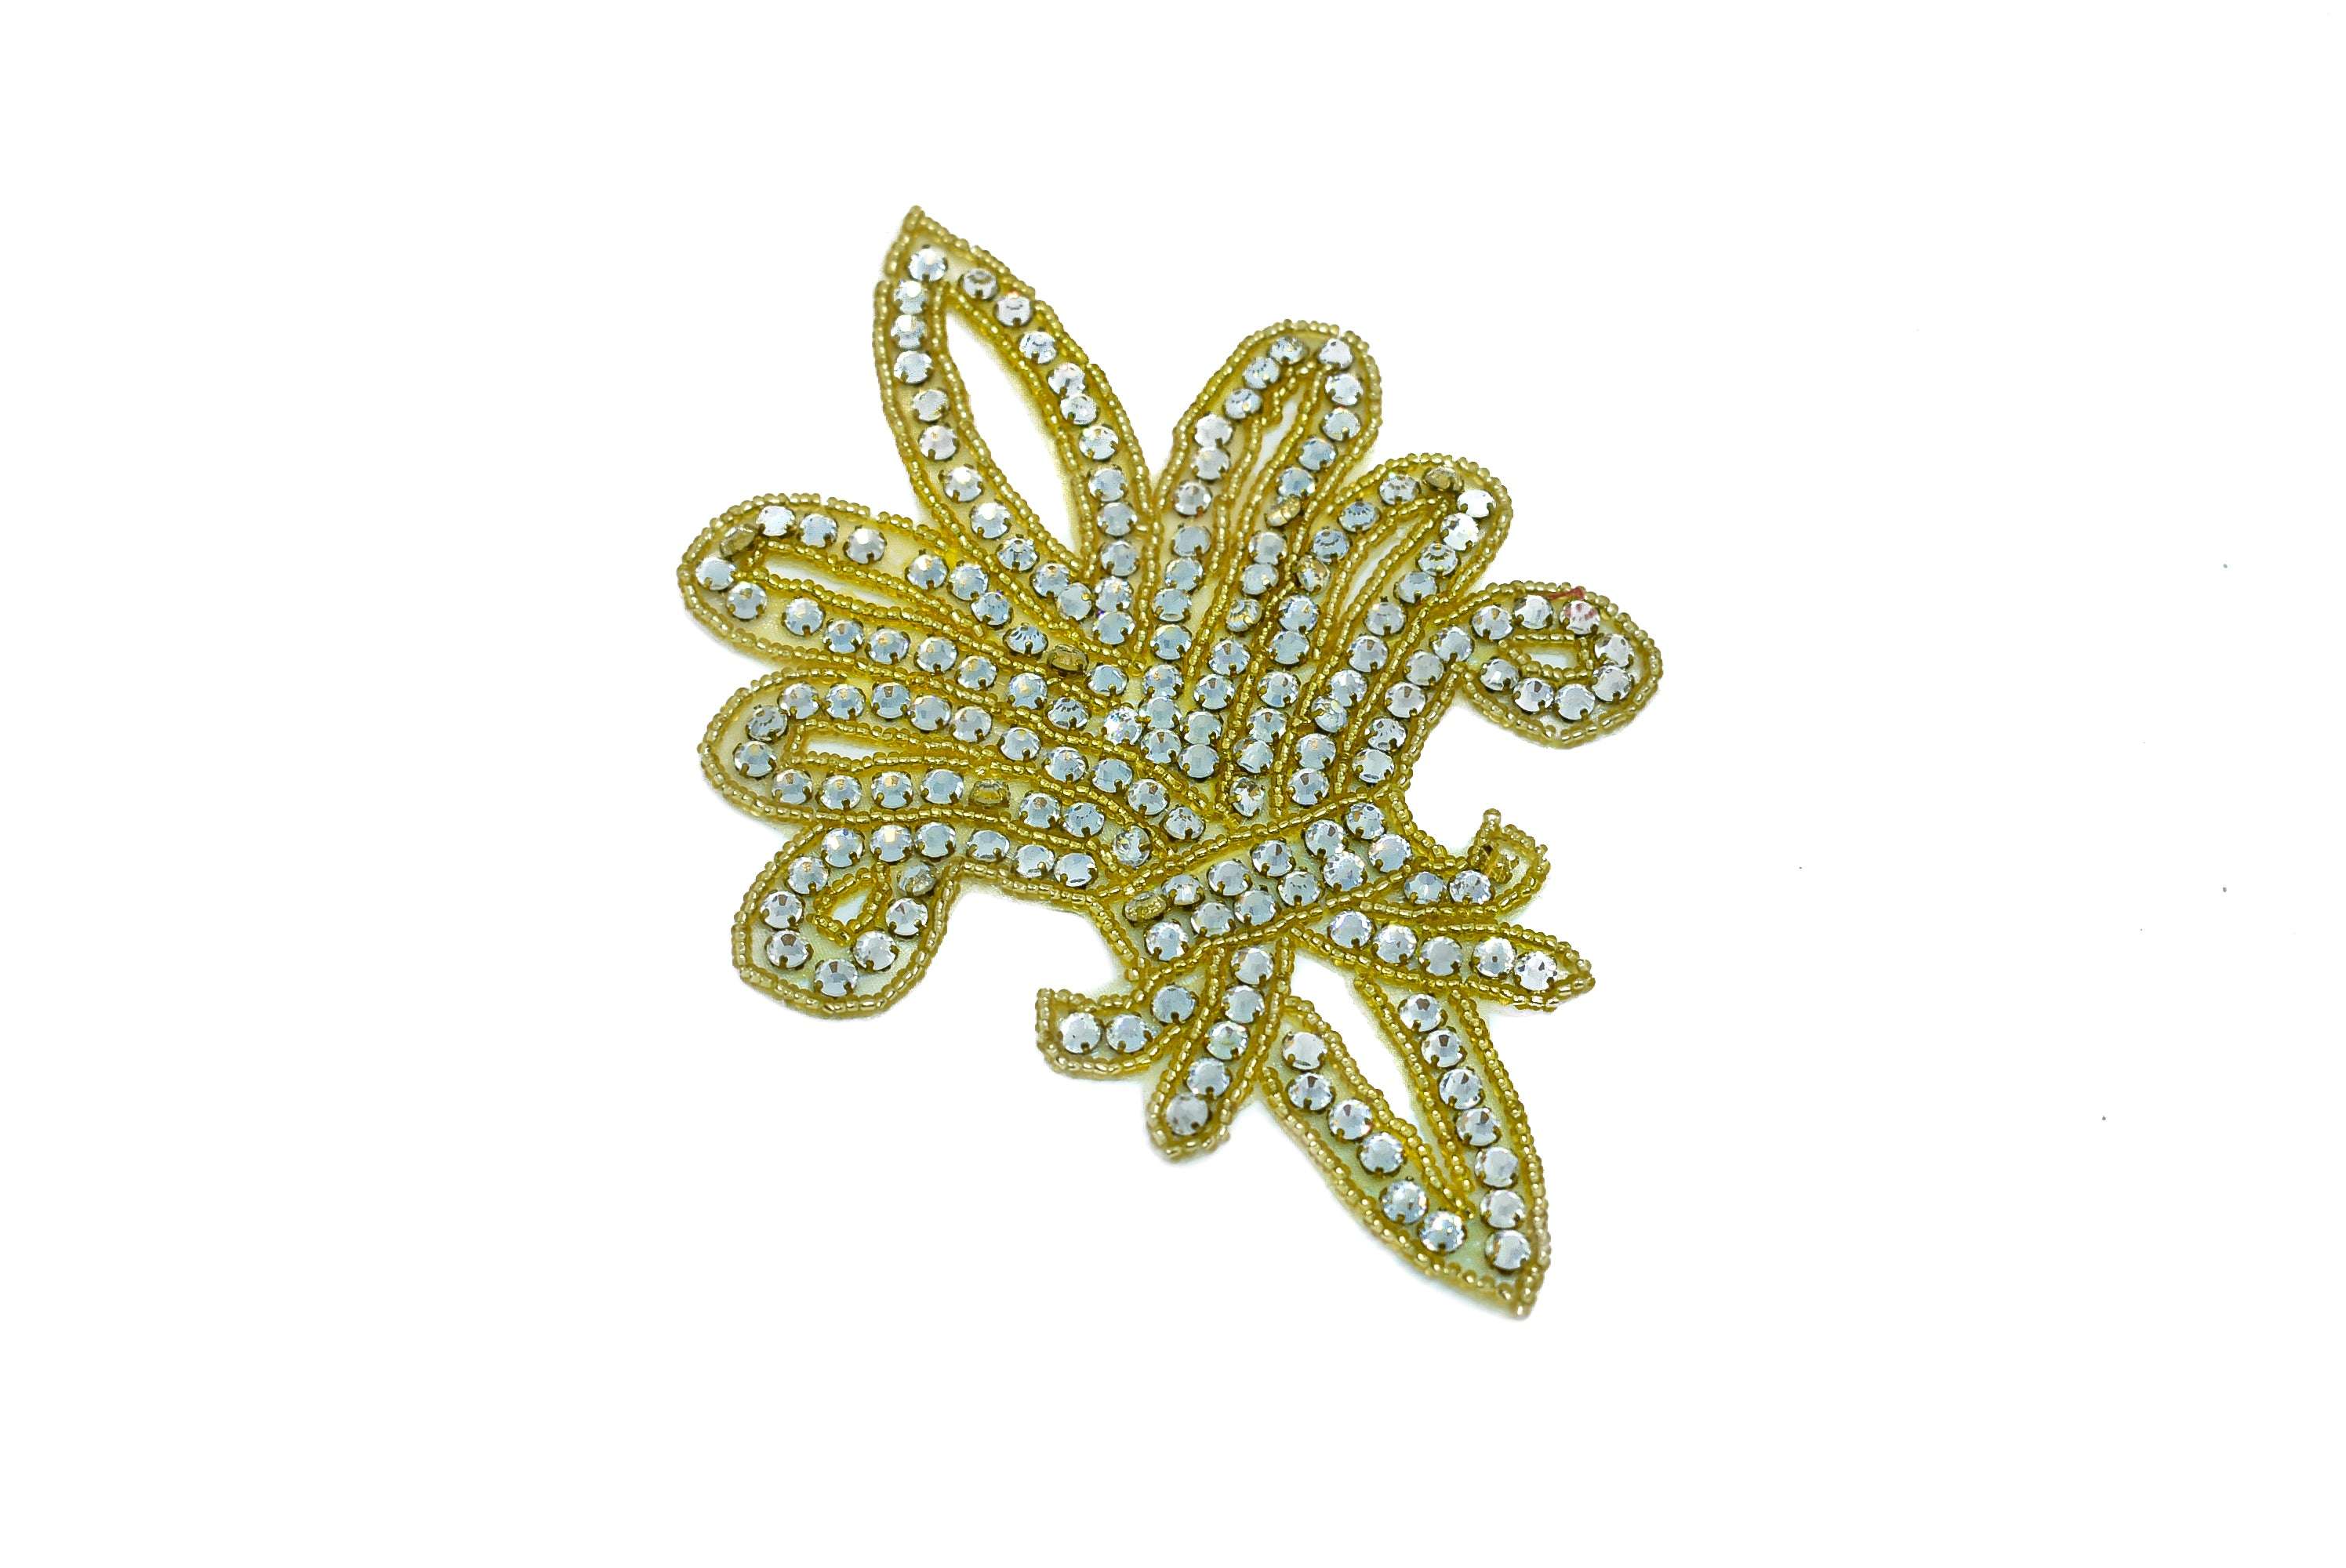 "Fleur-de-lis Rhinestone Iron-On Patch/Applique 7"" x 4.5"" - 1 Piece"